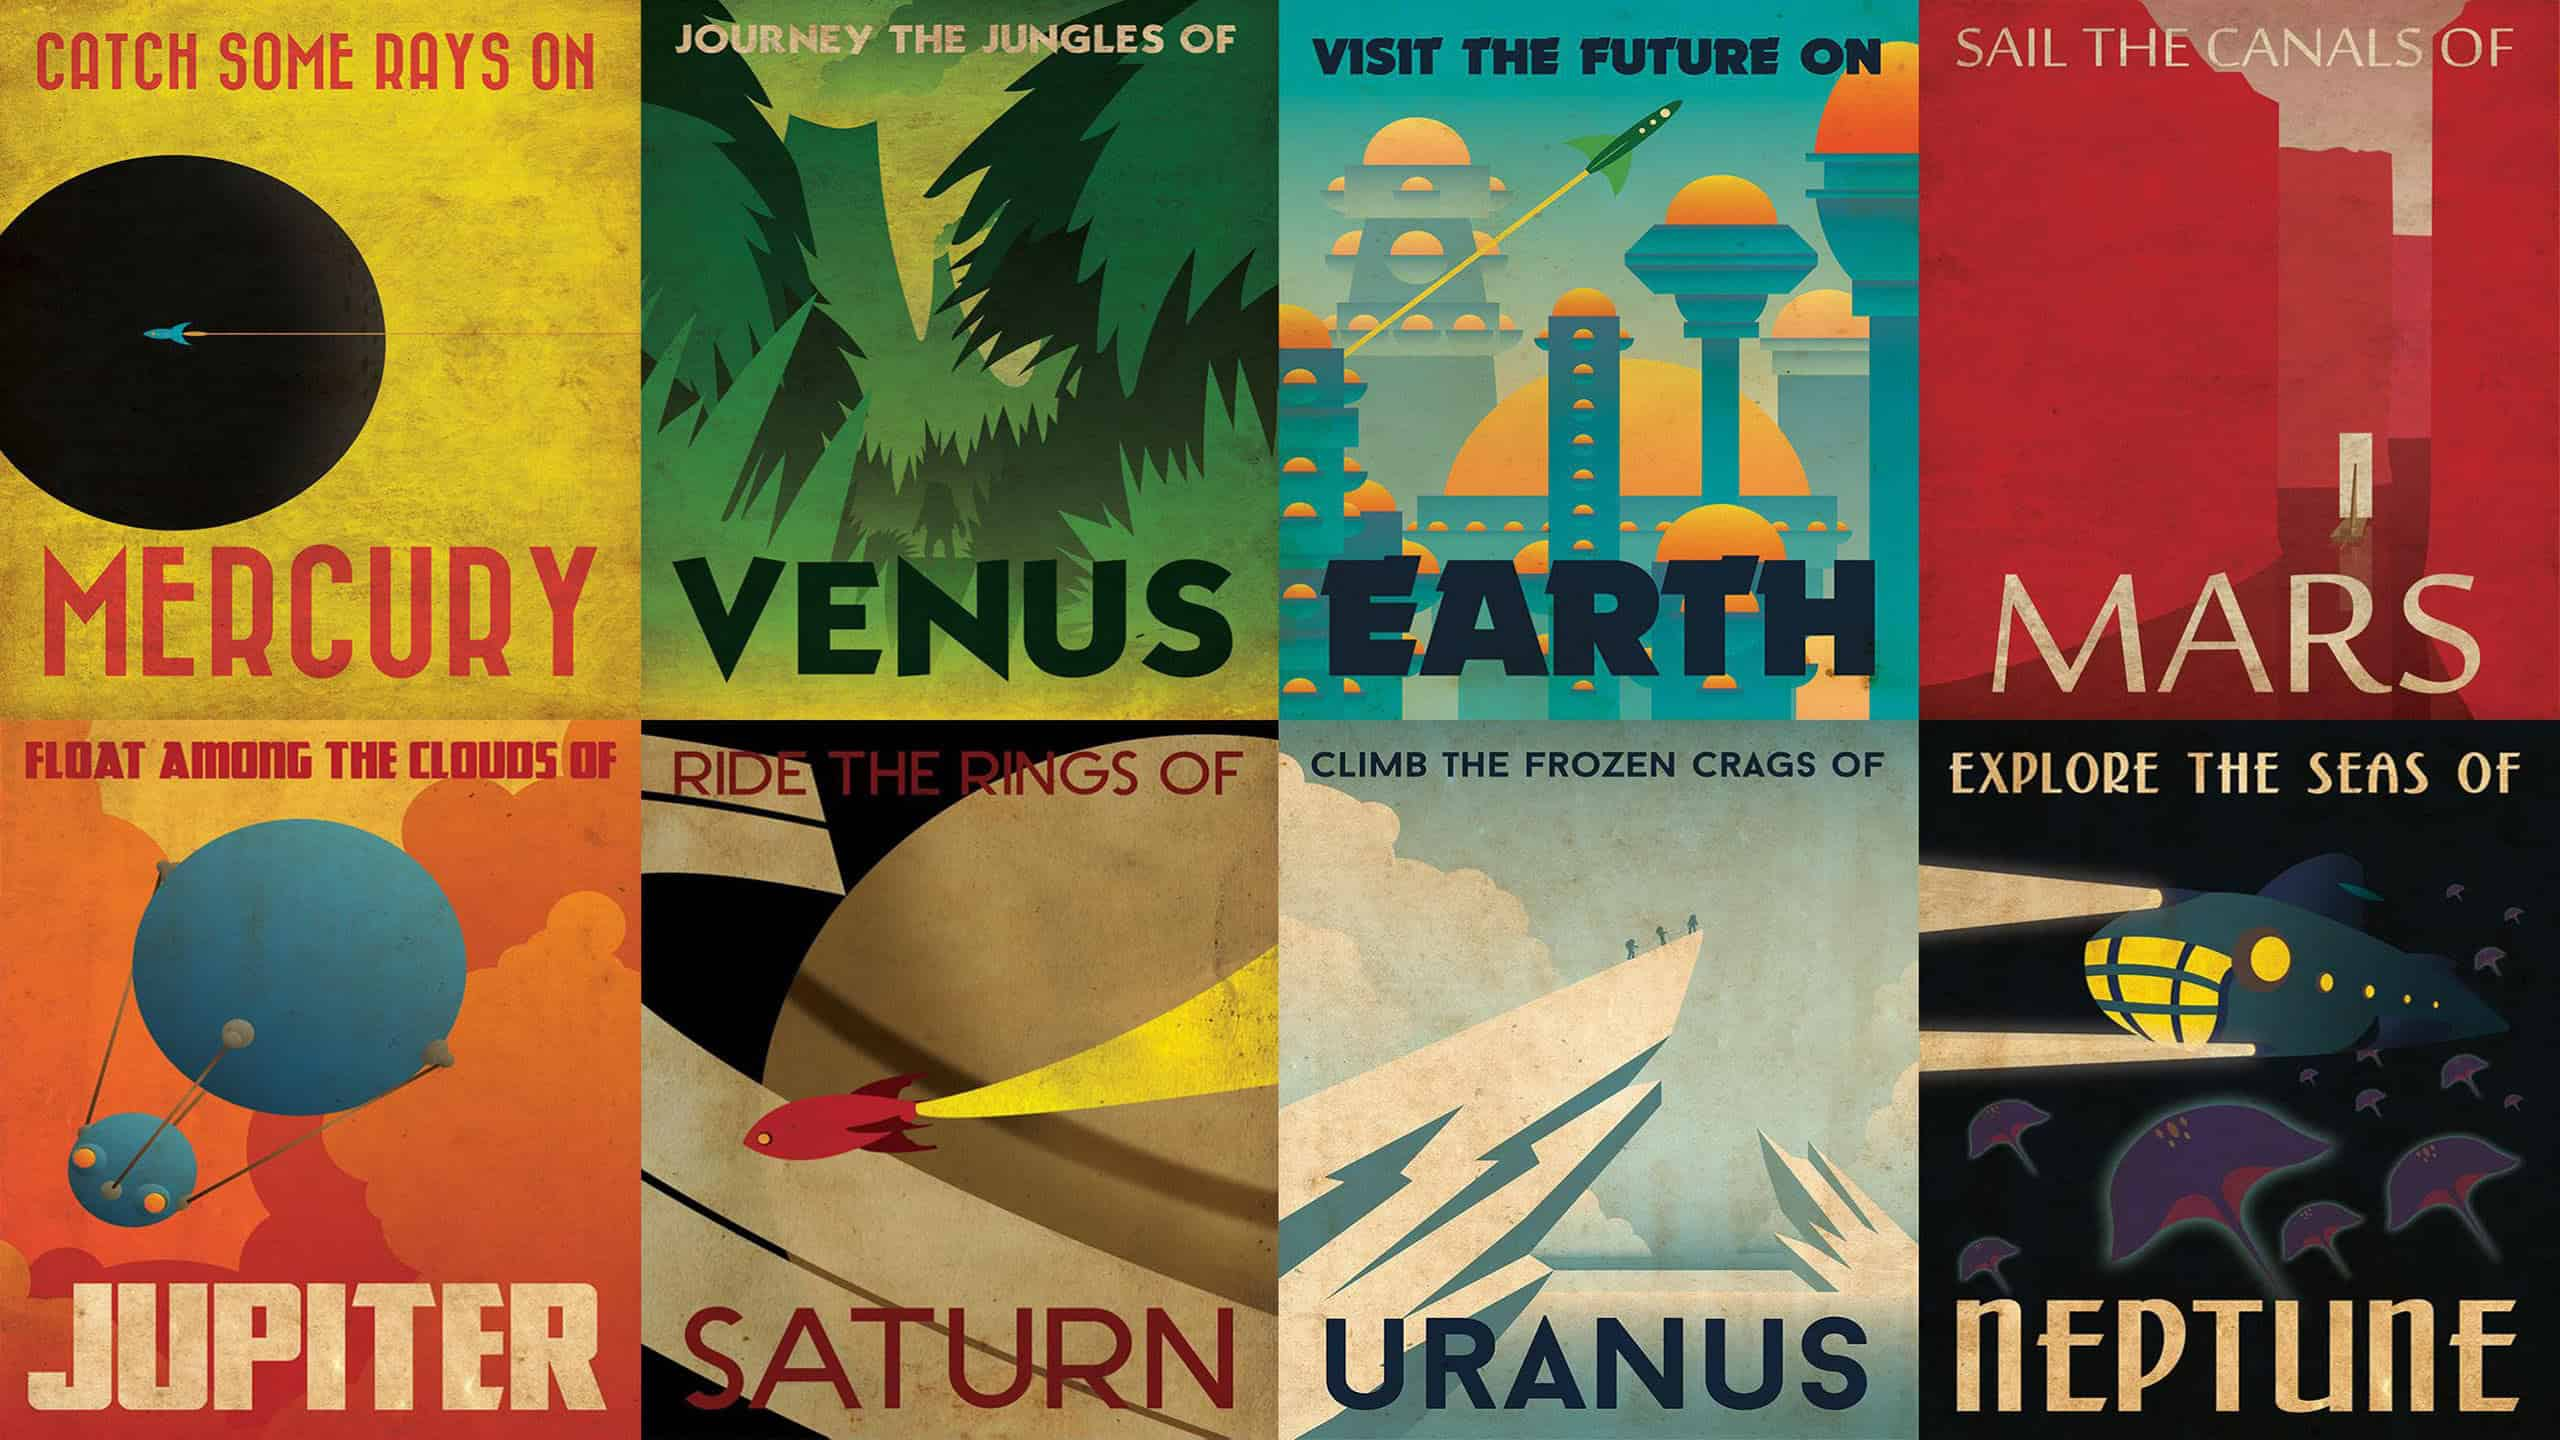 Retro Futurism Posters Wqhd 1440p Wallpaper